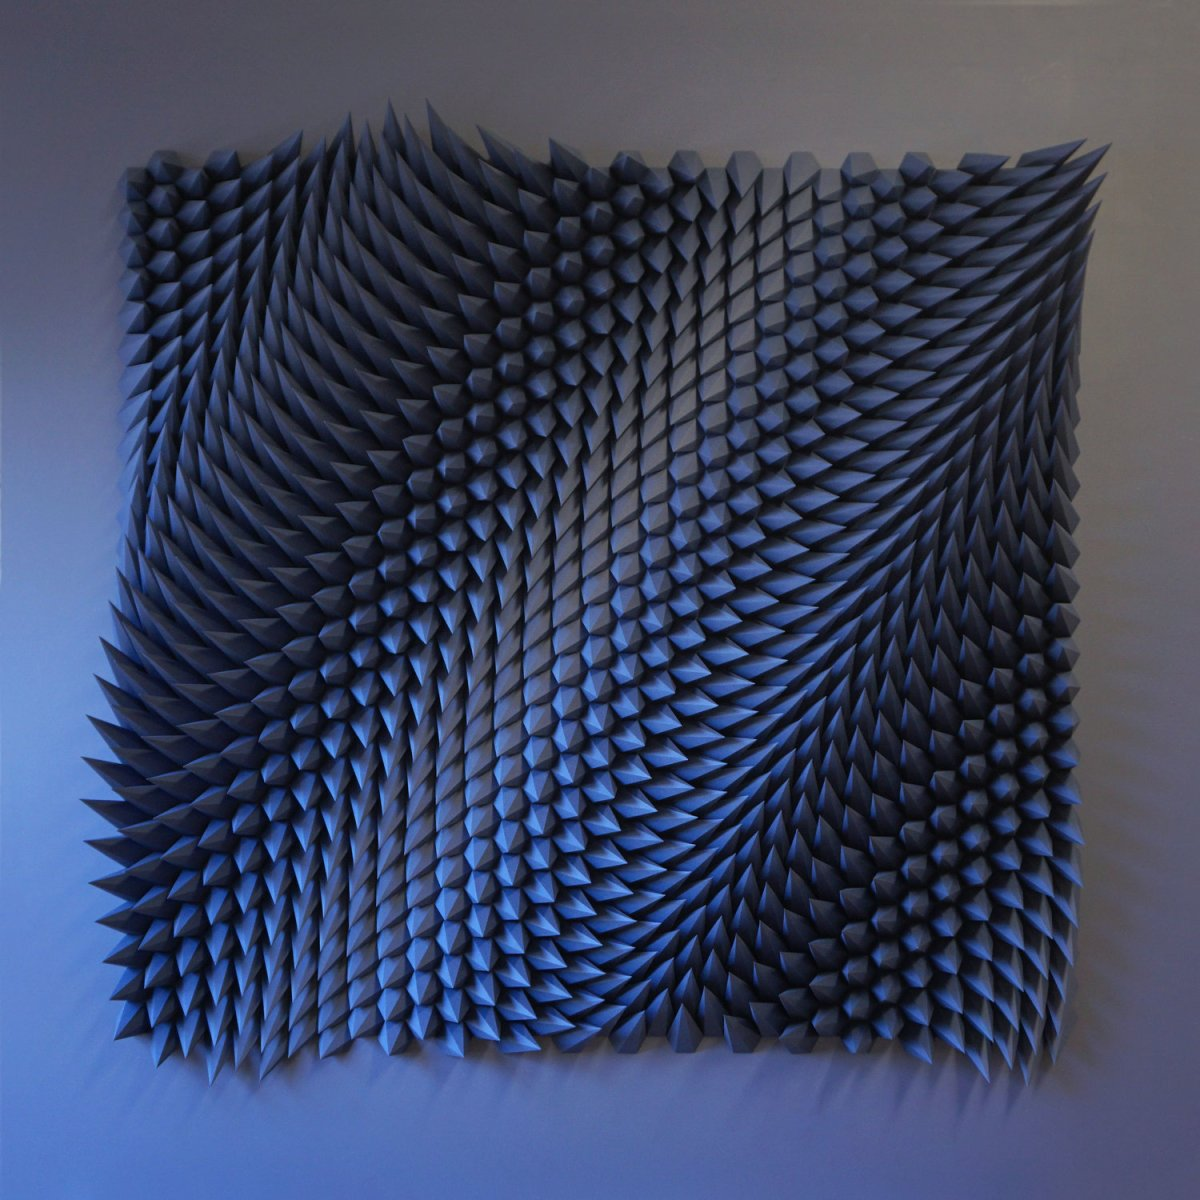 Paper Engineering Sculpt'About: Matt Shlian